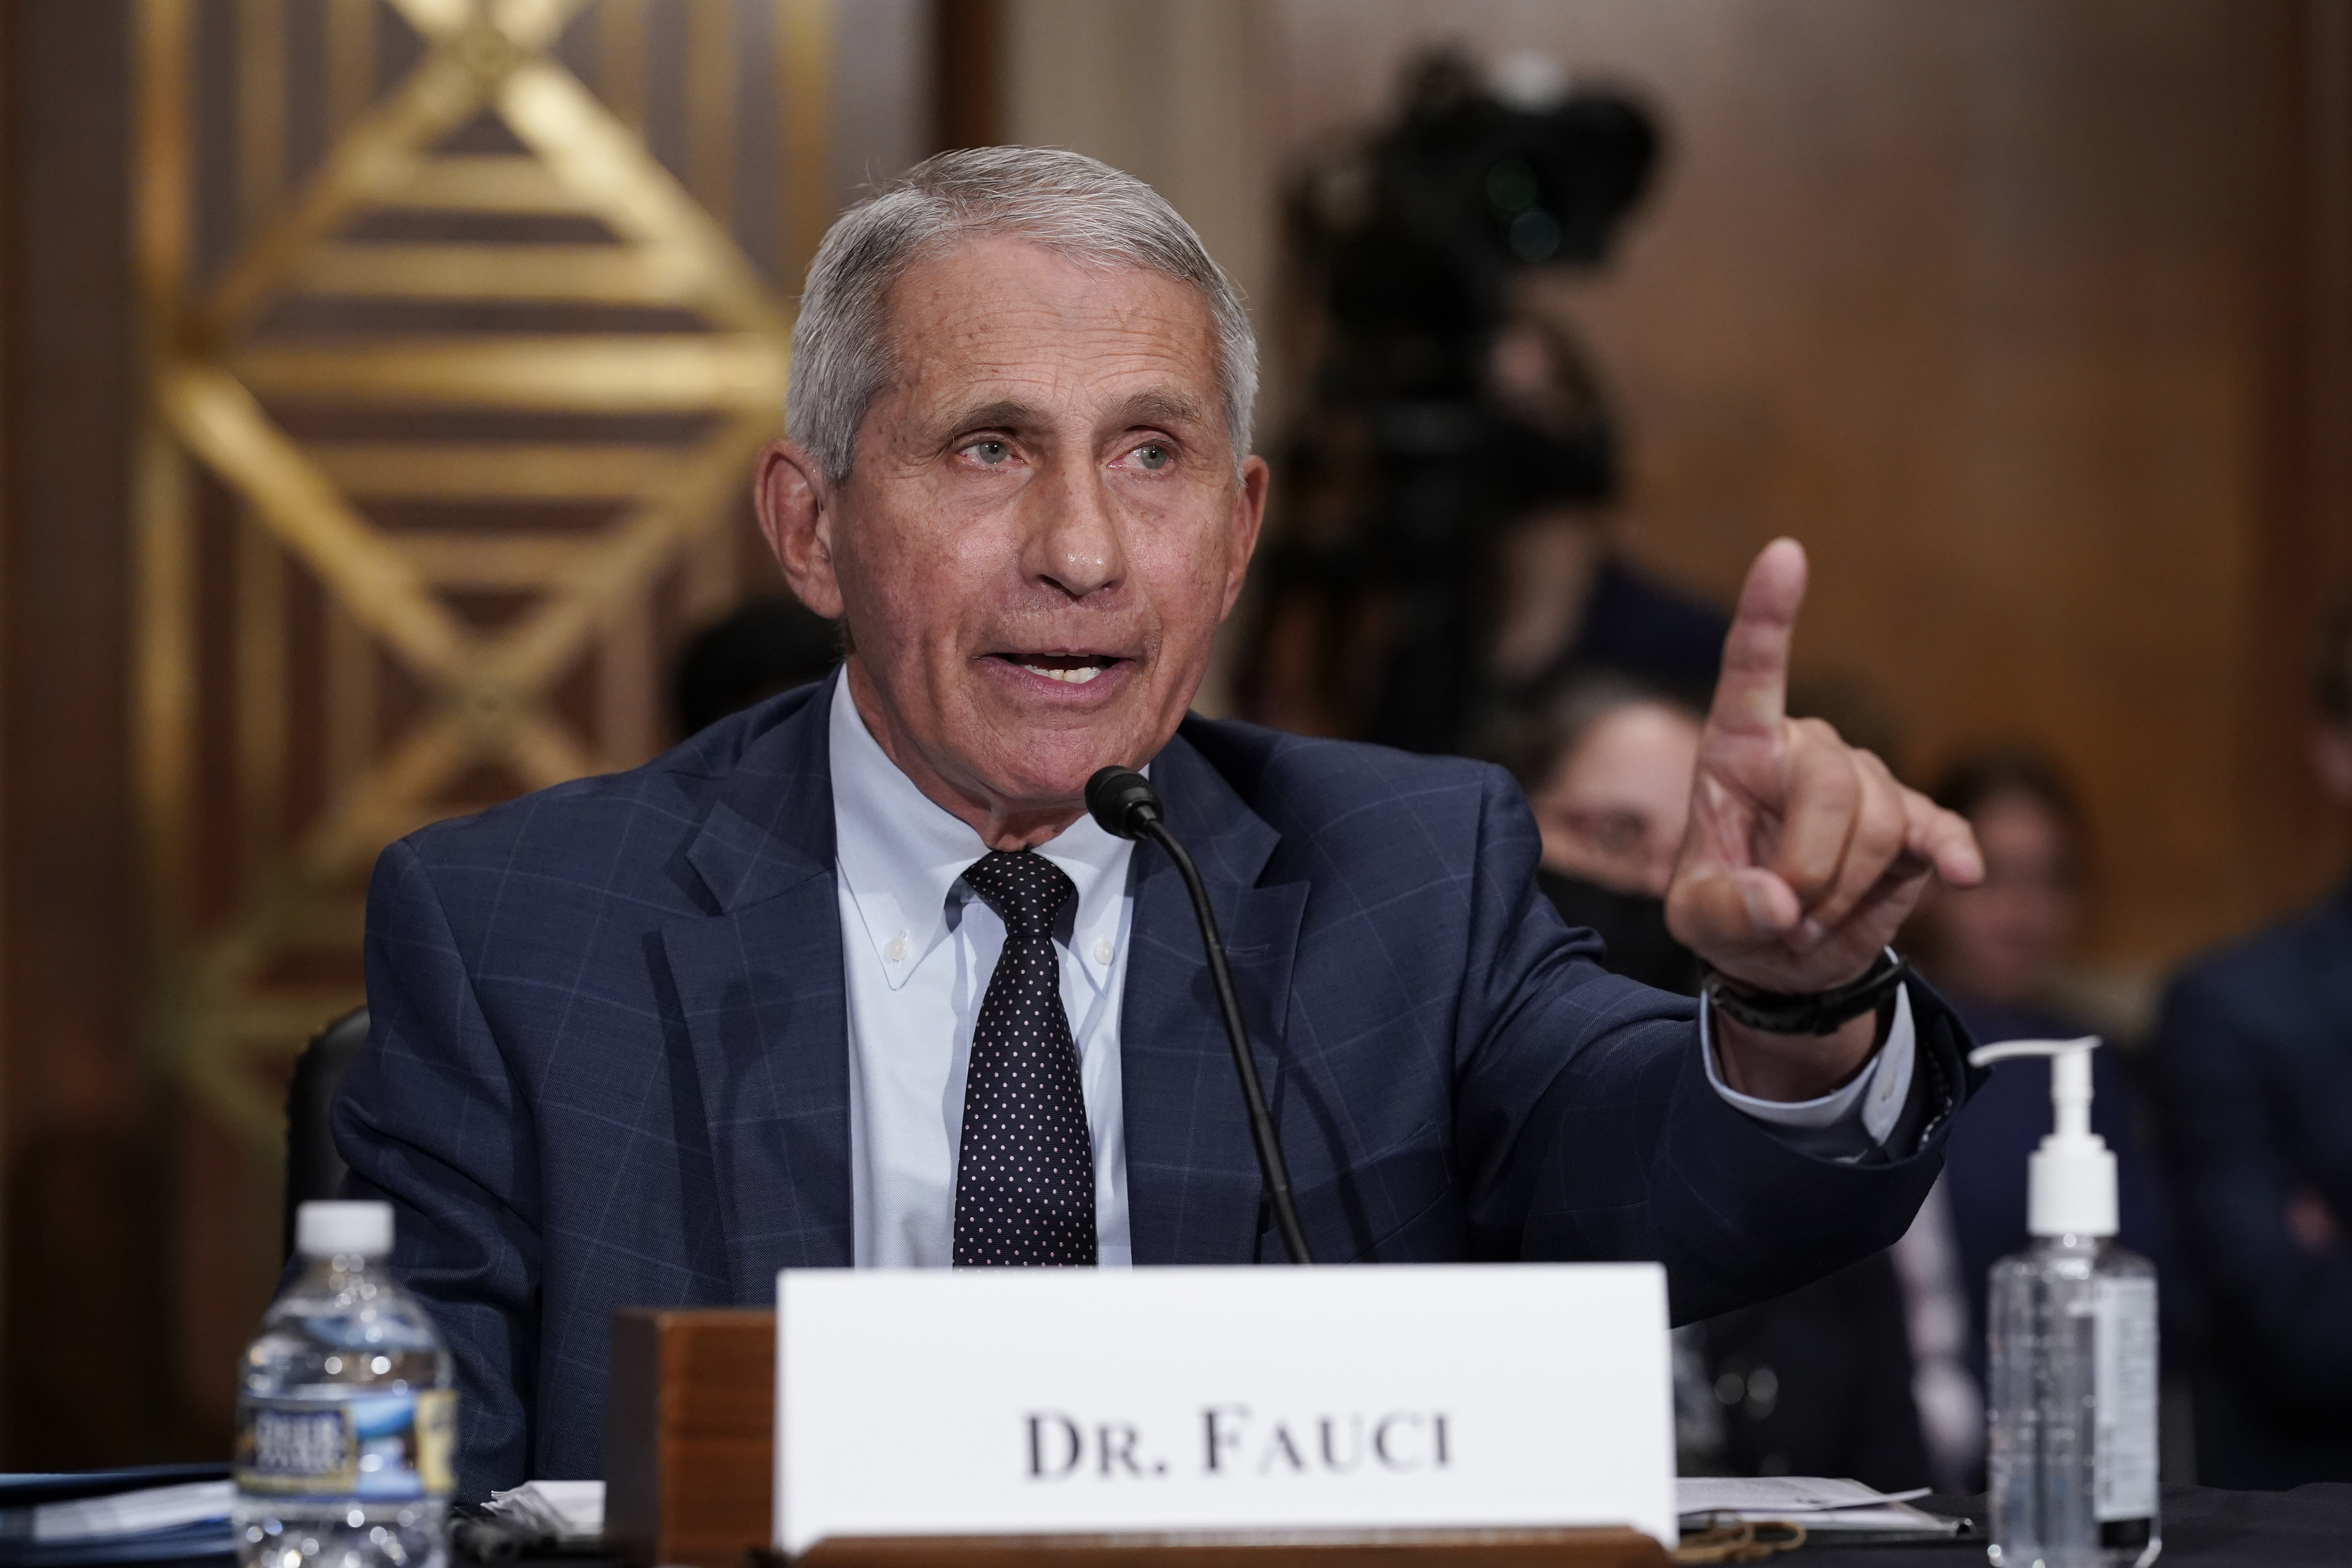 Top infectious disease expert Dr. Anthony Fauci responds on Capitol Hill in Washington, D.C.